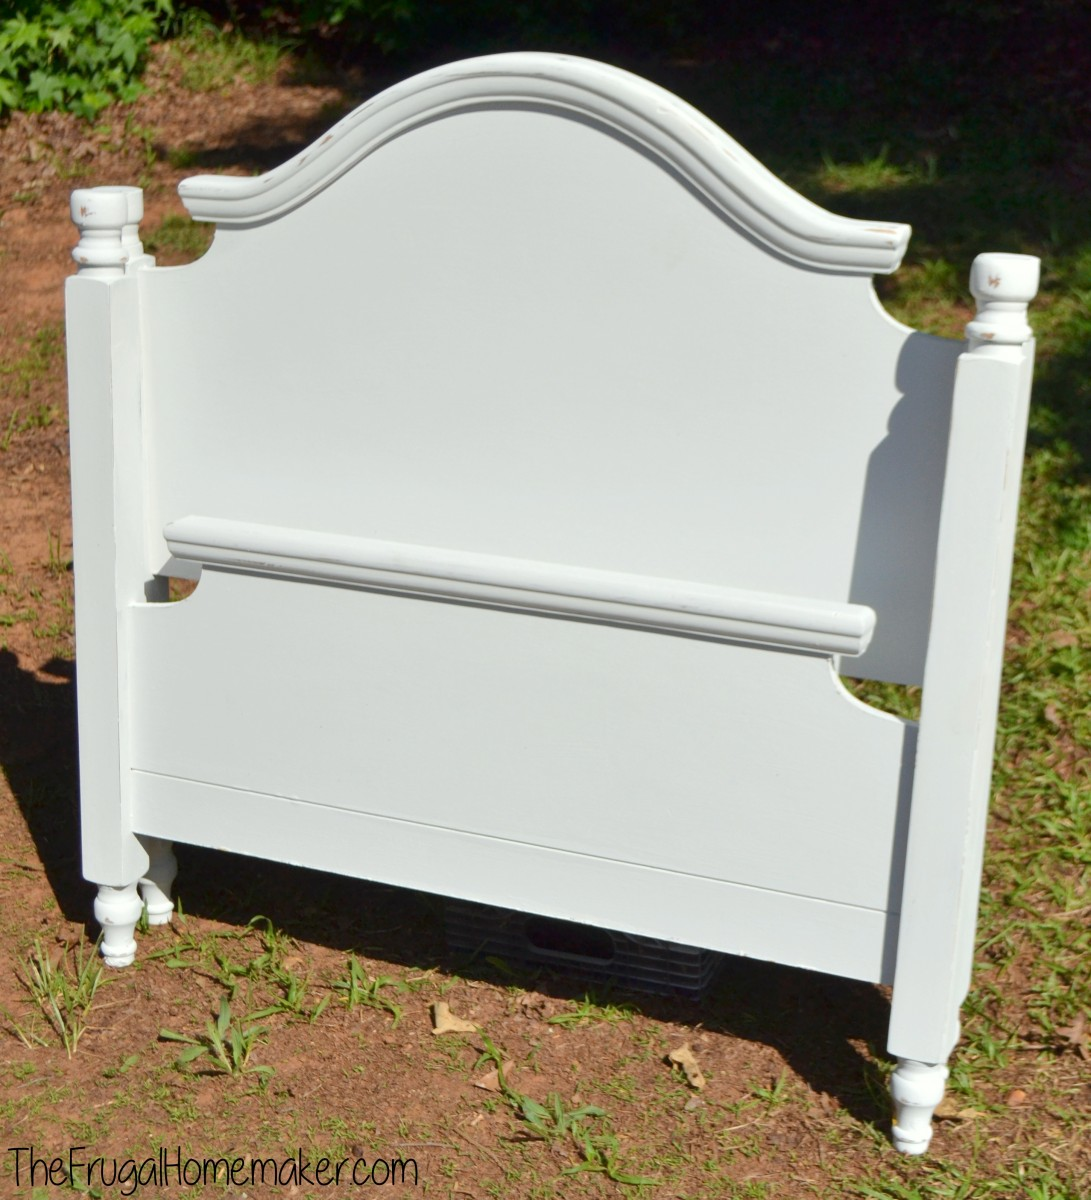 Bedroom Furniture Yard Sale: Your Guide To Turning Your House